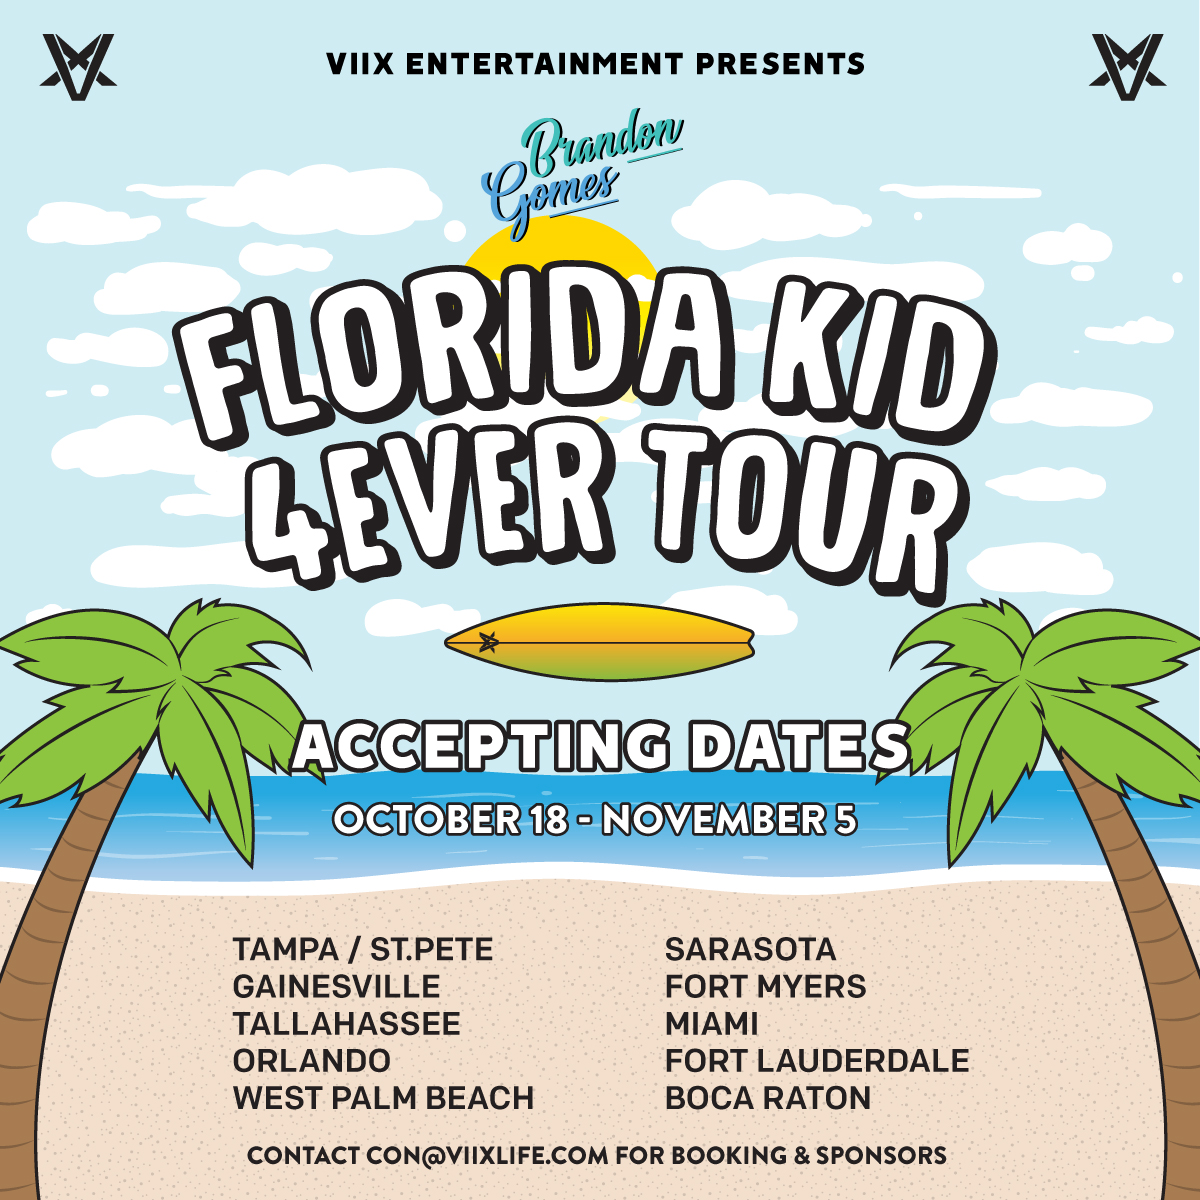 Florida-Kid-4Ever-Tour_flyer_v2.jpg